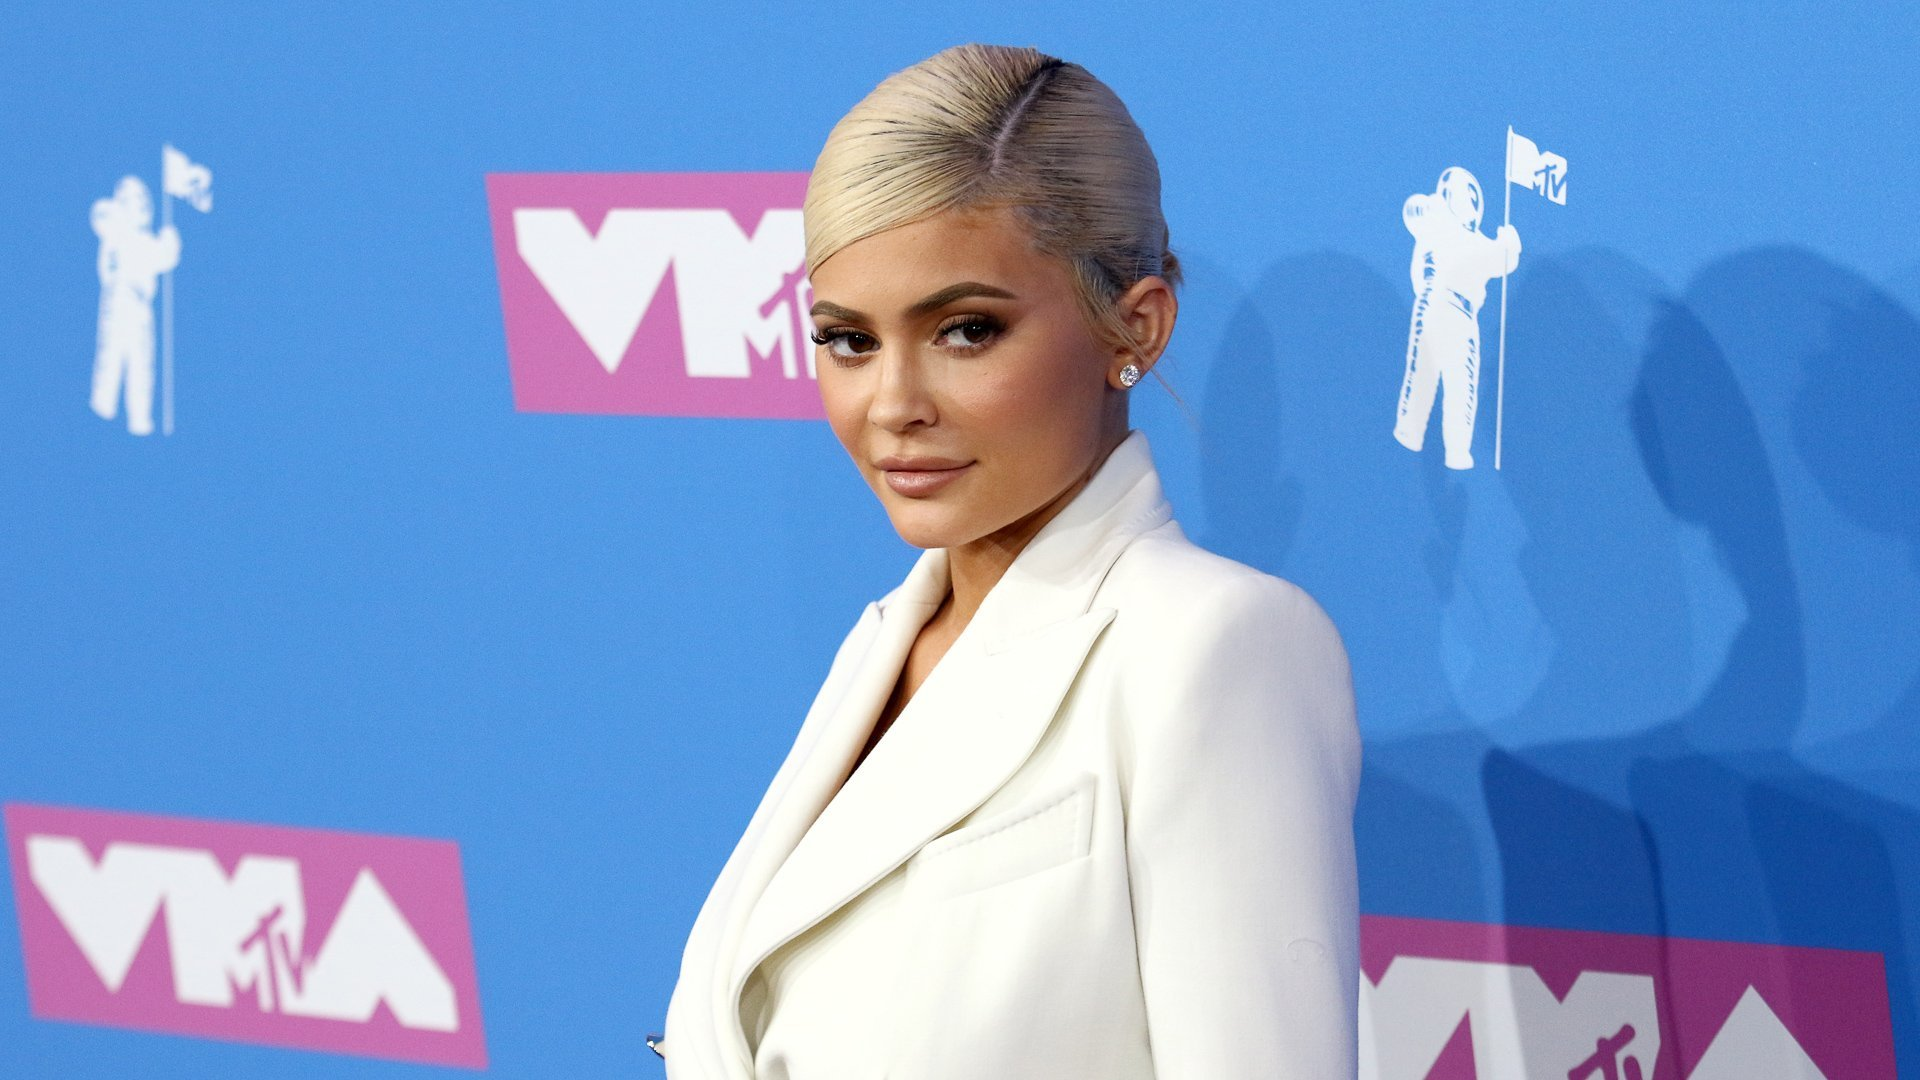 How Rich Are Kylie Jenner and These Other Stars?